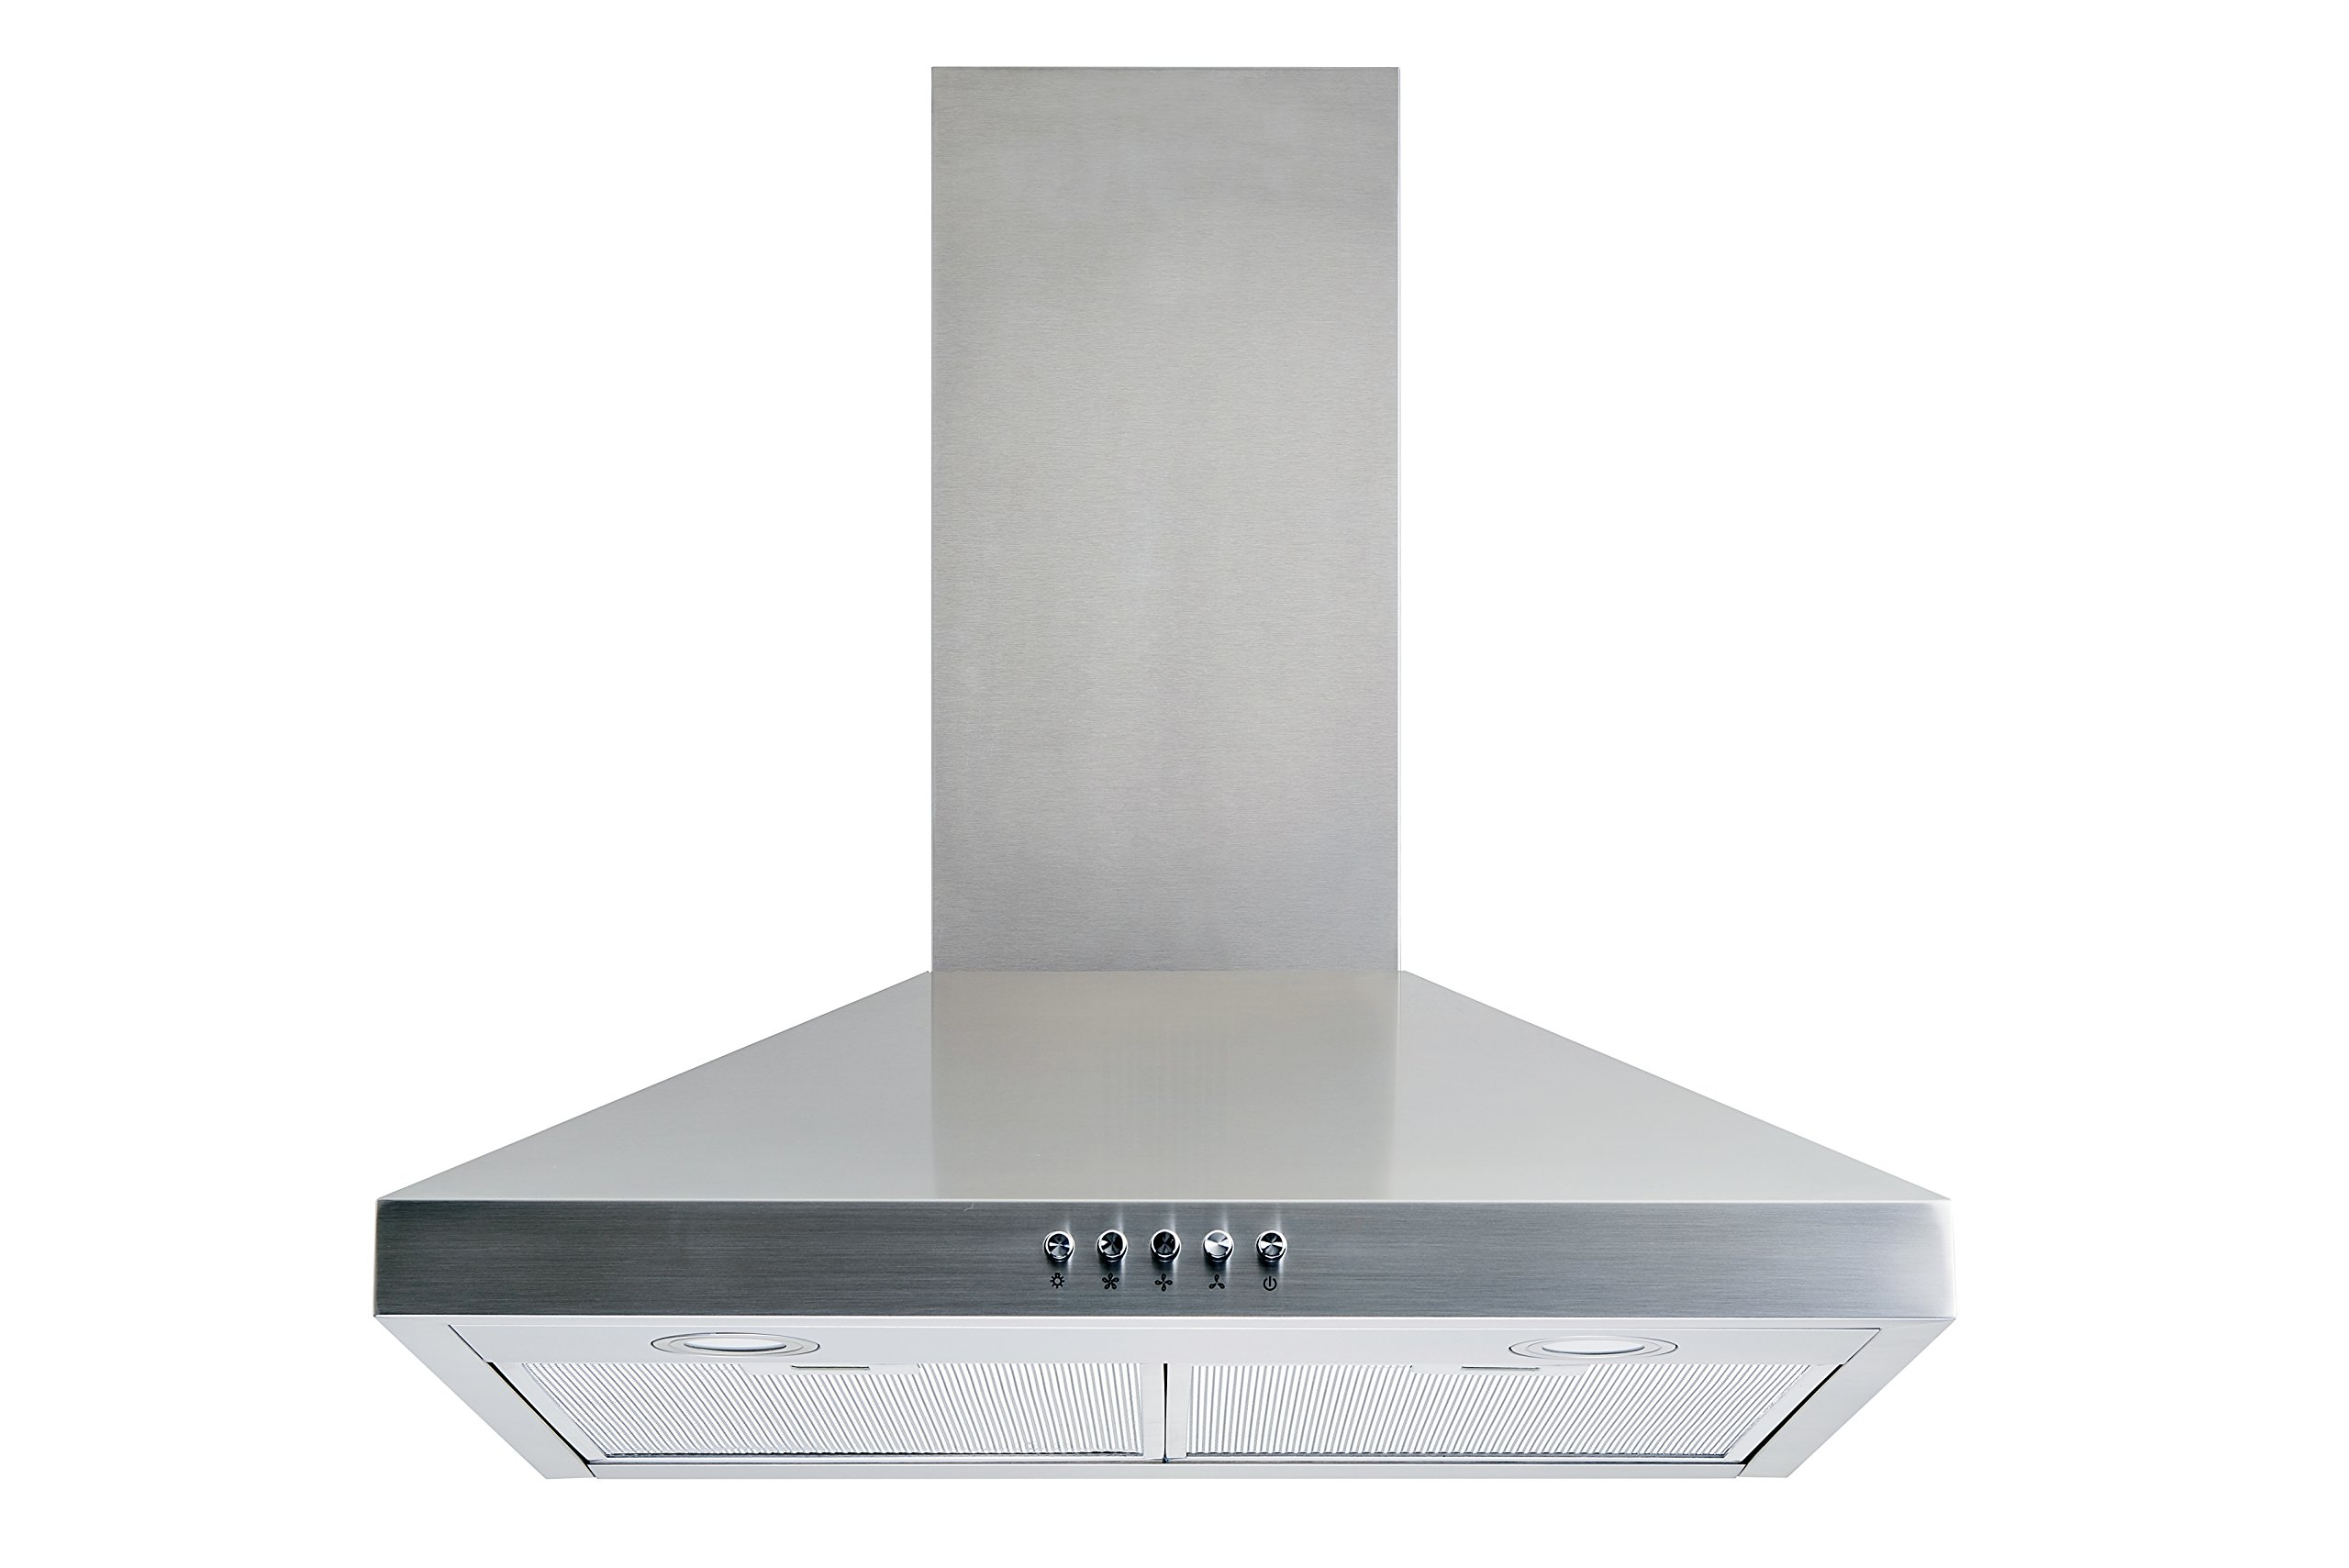 Winflo New 30'' Convertible Stainless Steel Wall Mount Range Hood with Aluminum Mesh filter, Ultra bright LED lights and Push Button 3 Speed Control by Winflo